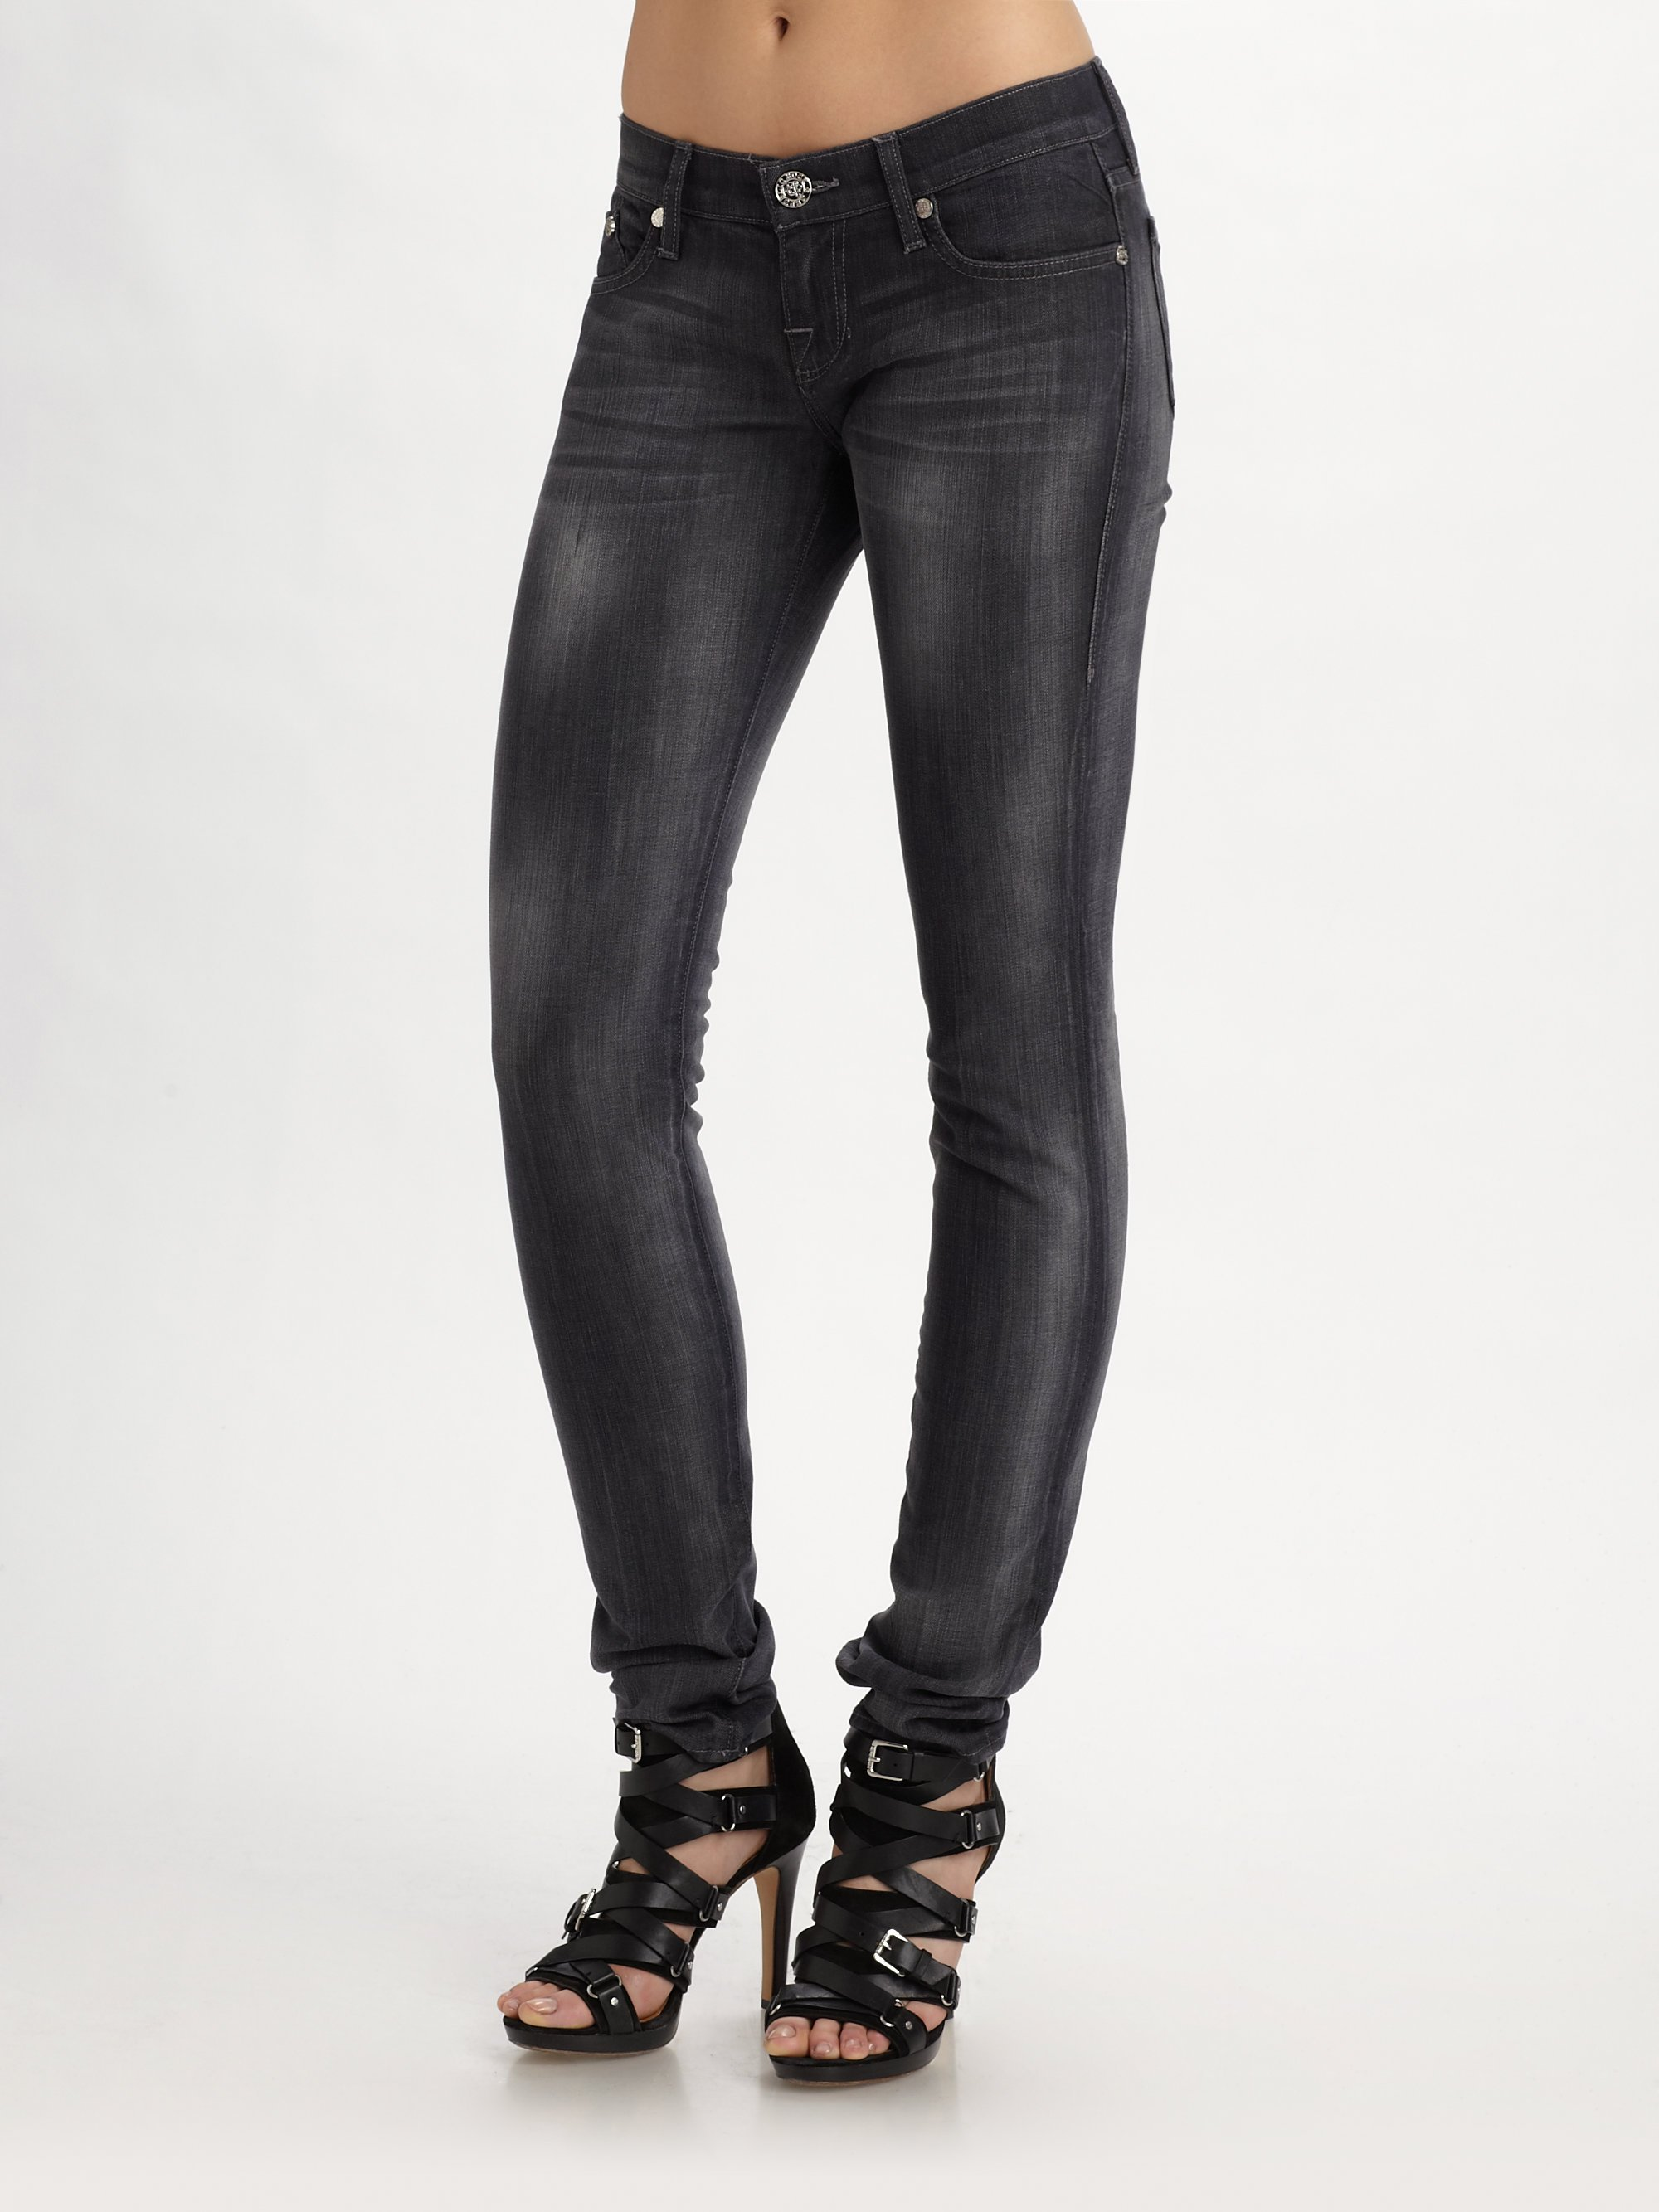 lyst rock republic crazy b low rise skinny jeans in gray. Black Bedroom Furniture Sets. Home Design Ideas